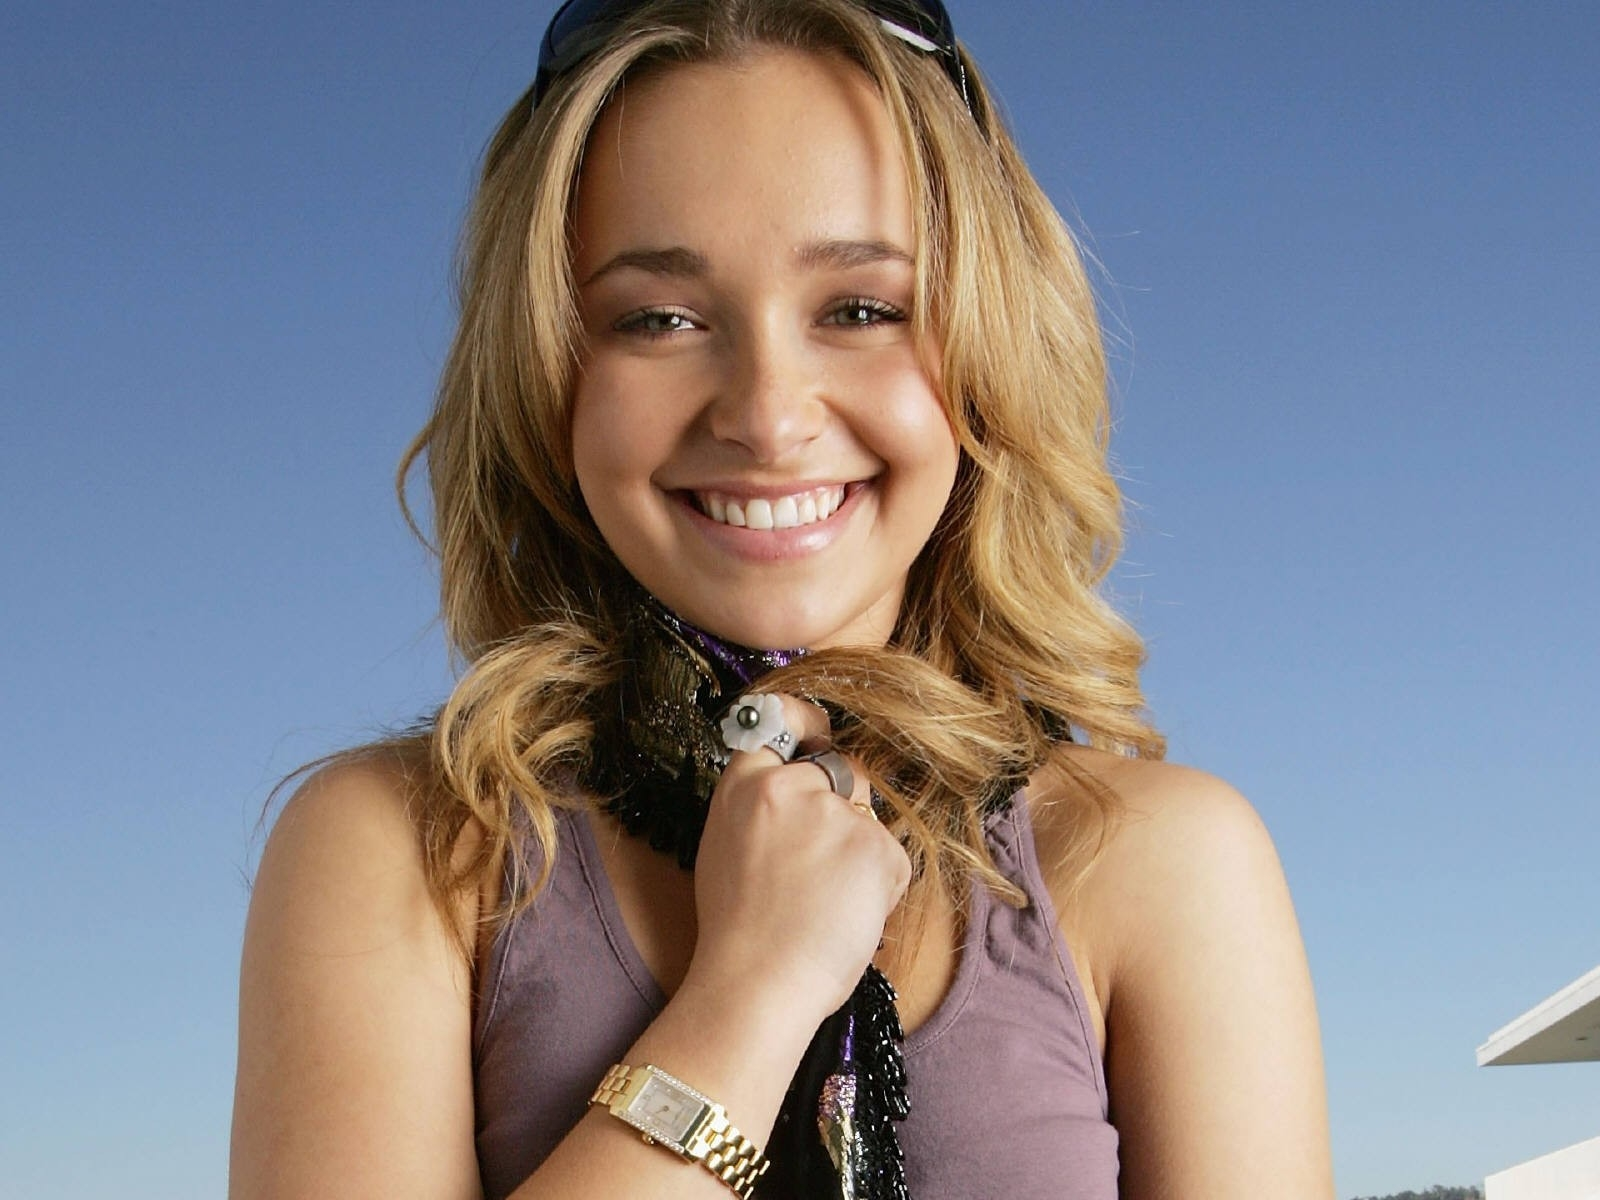 Wallpaper di Hayden Panettiere - 5